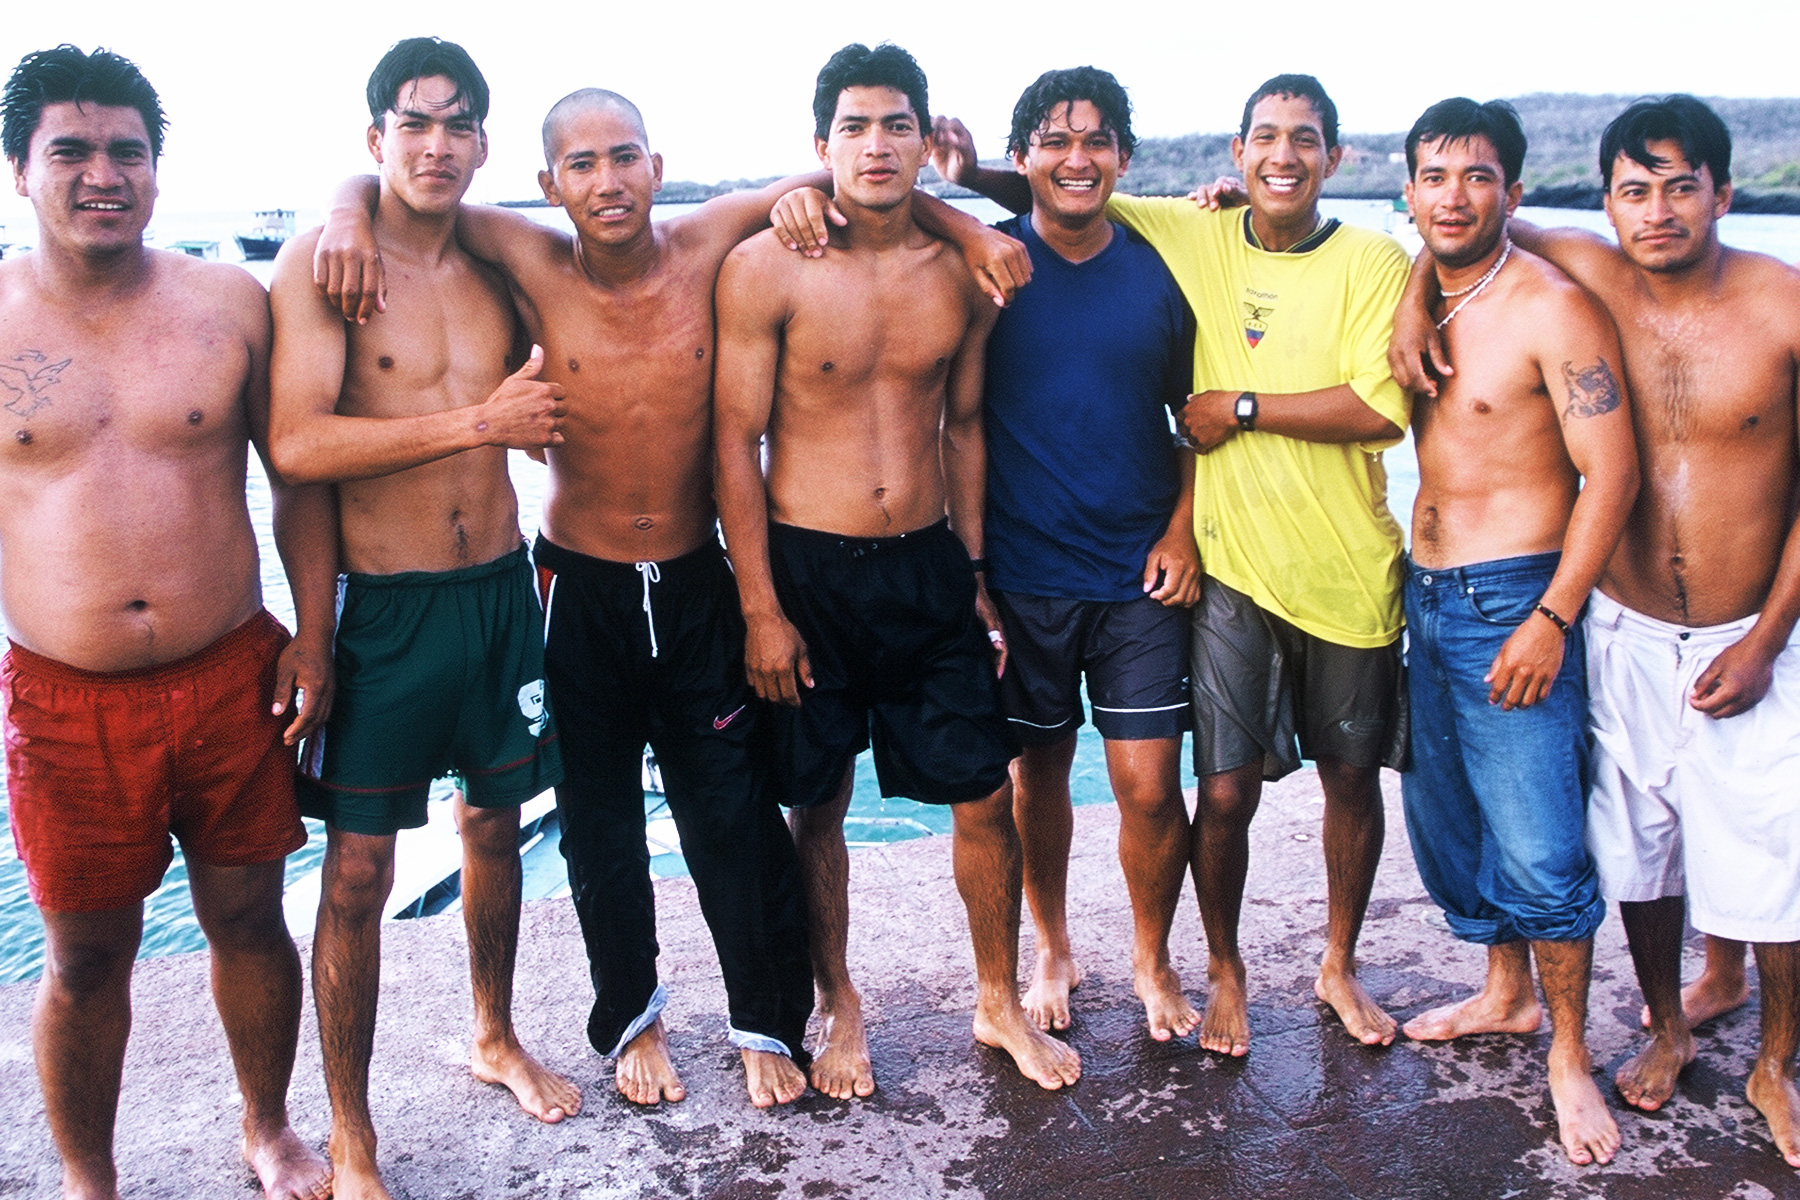 Puerto Baquerizo Moreno | Swimming at the pier | San Cristobal Galapagos | Steven Andrew Martin | Photo Journal